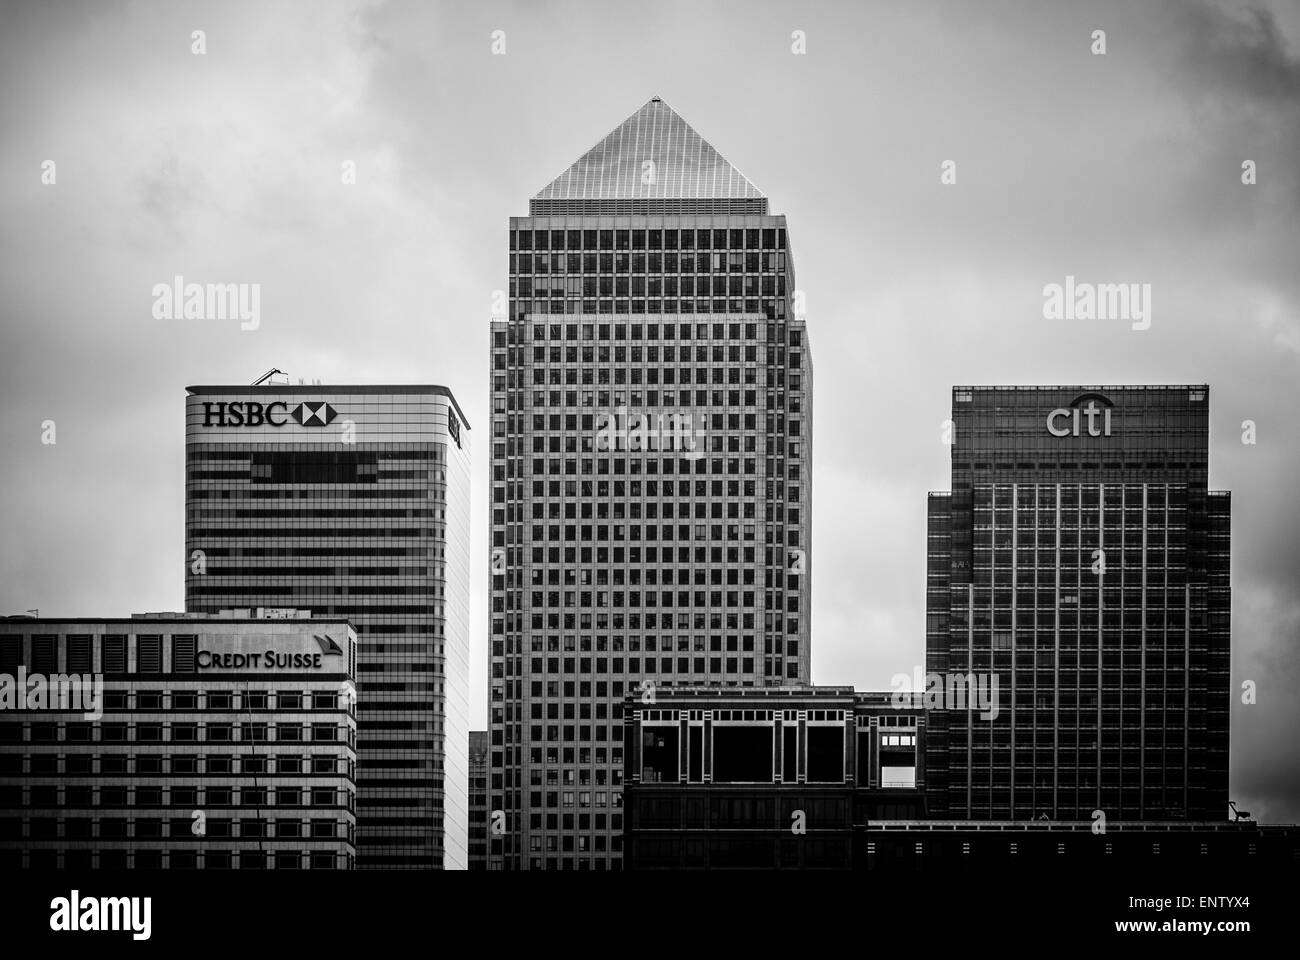 View of Canary Wharf from South side of river Thames (Rotherhithe, Southwark, London.) - Stock Image